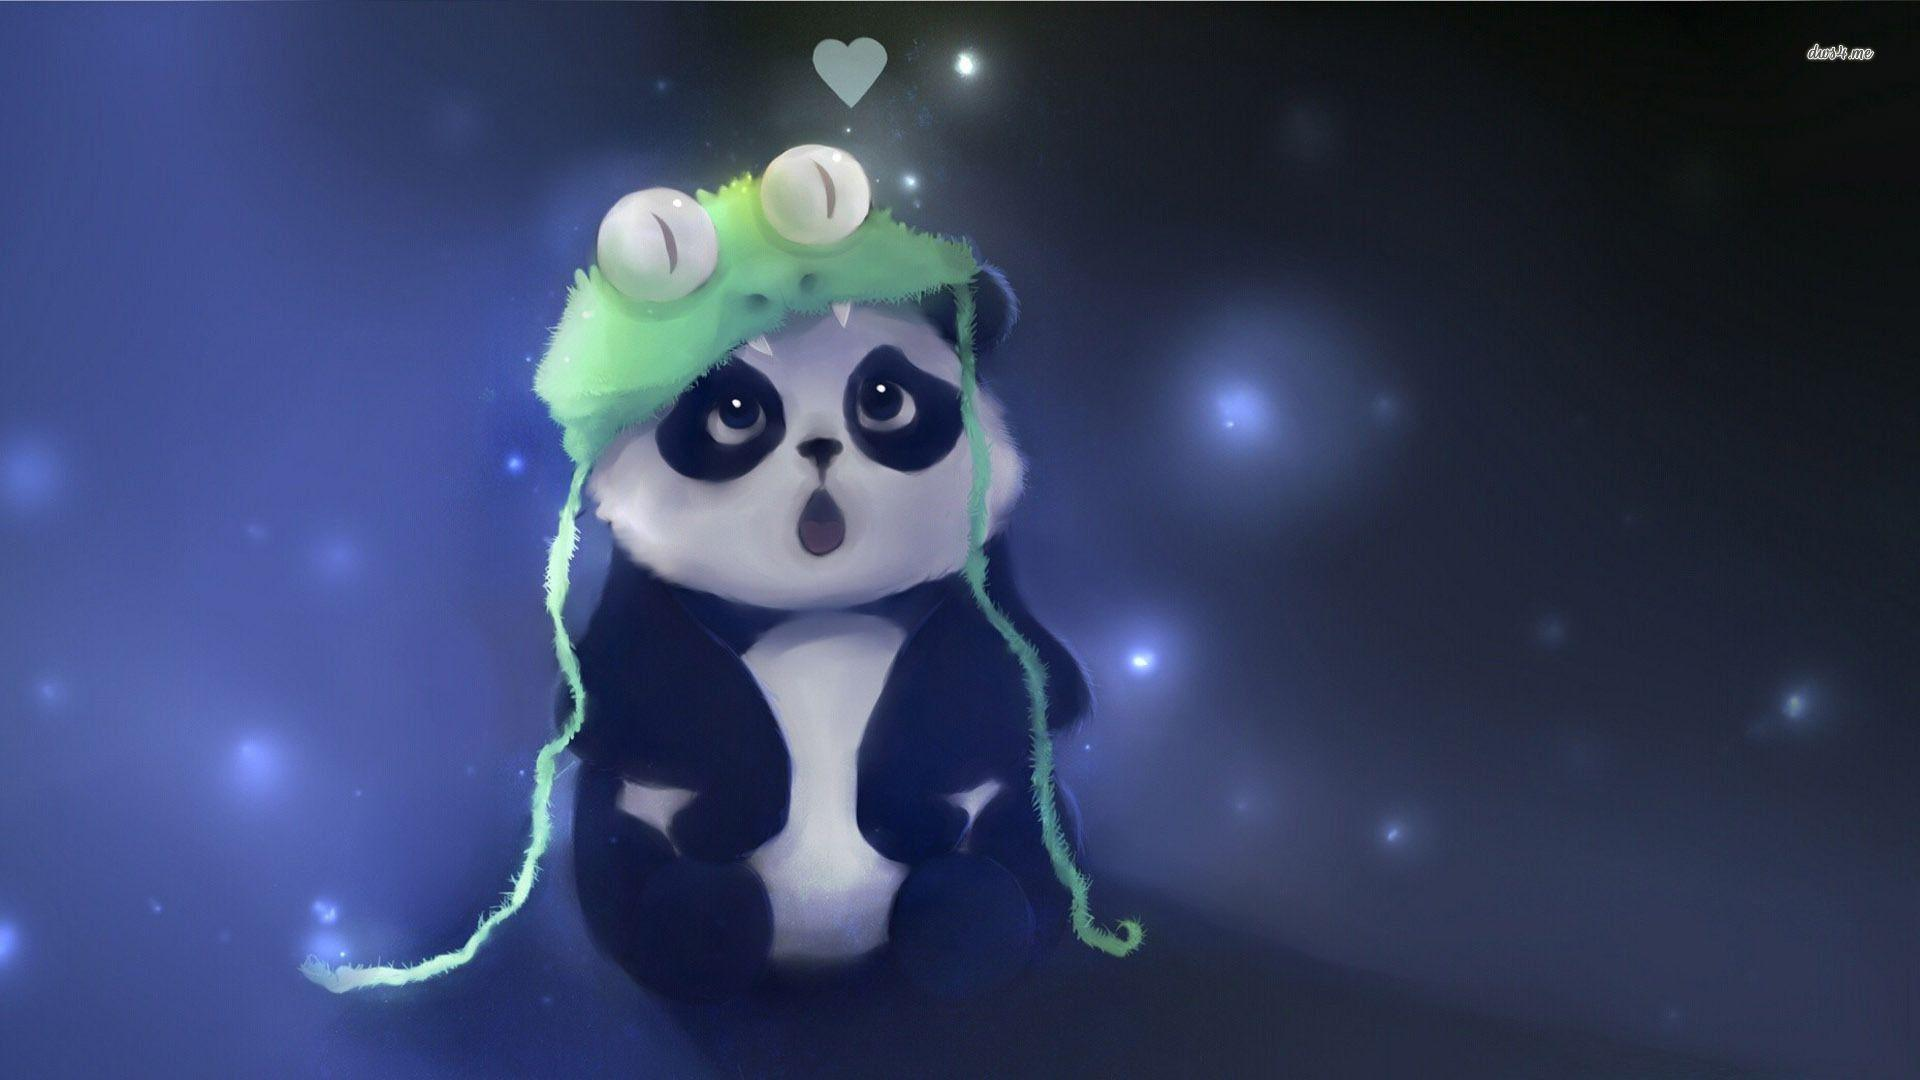 Panda Wallpapers 1920x1080